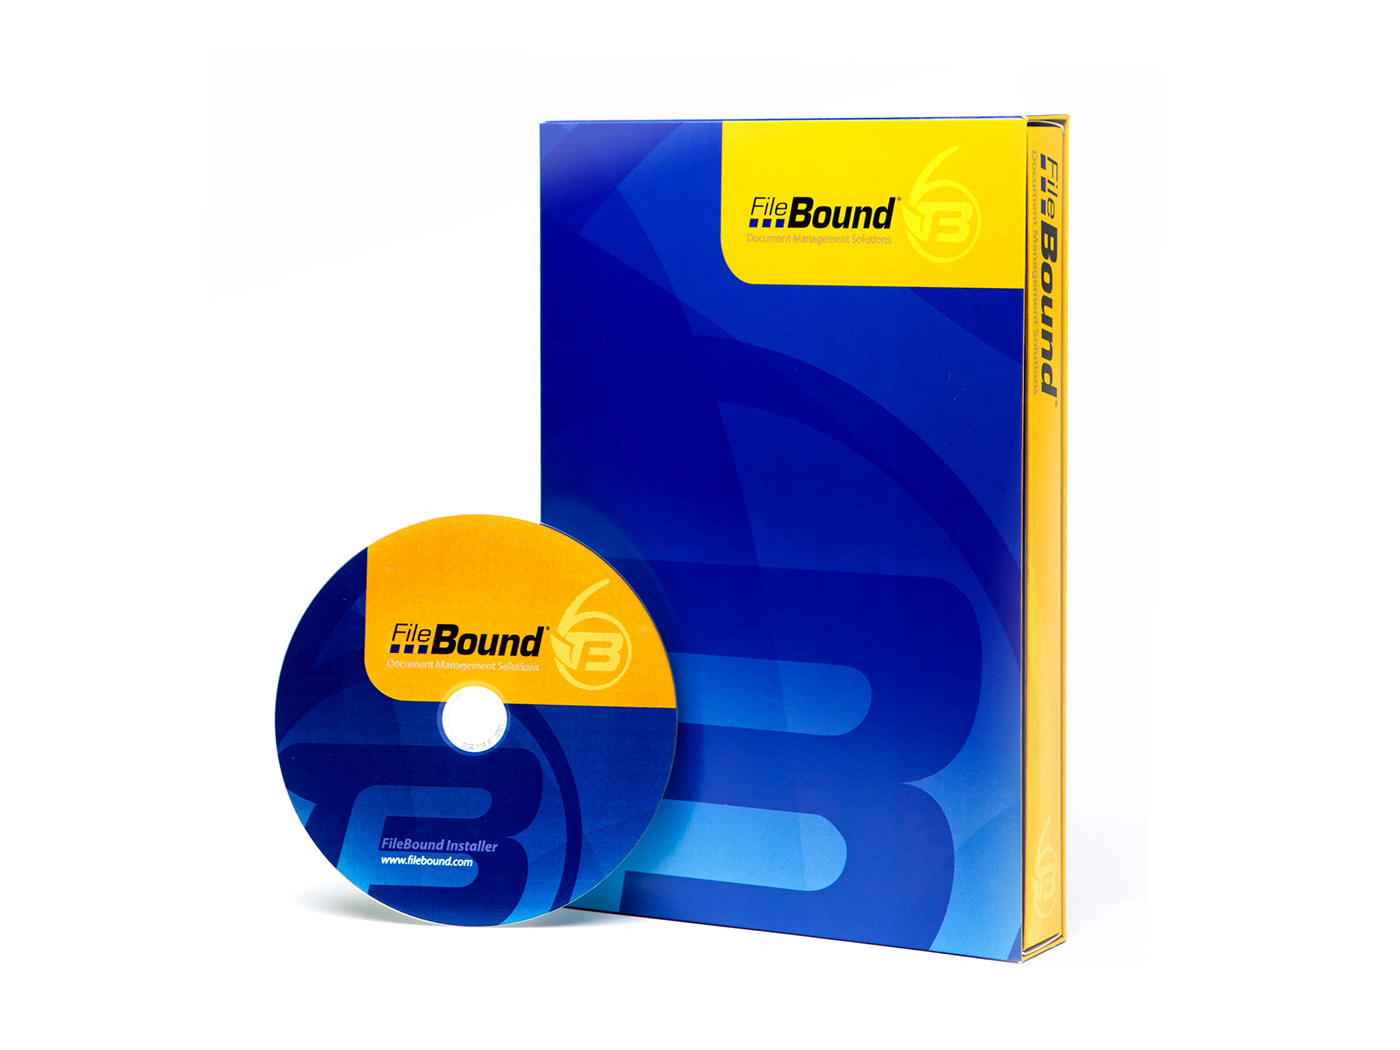 FileBound 6 Packaging